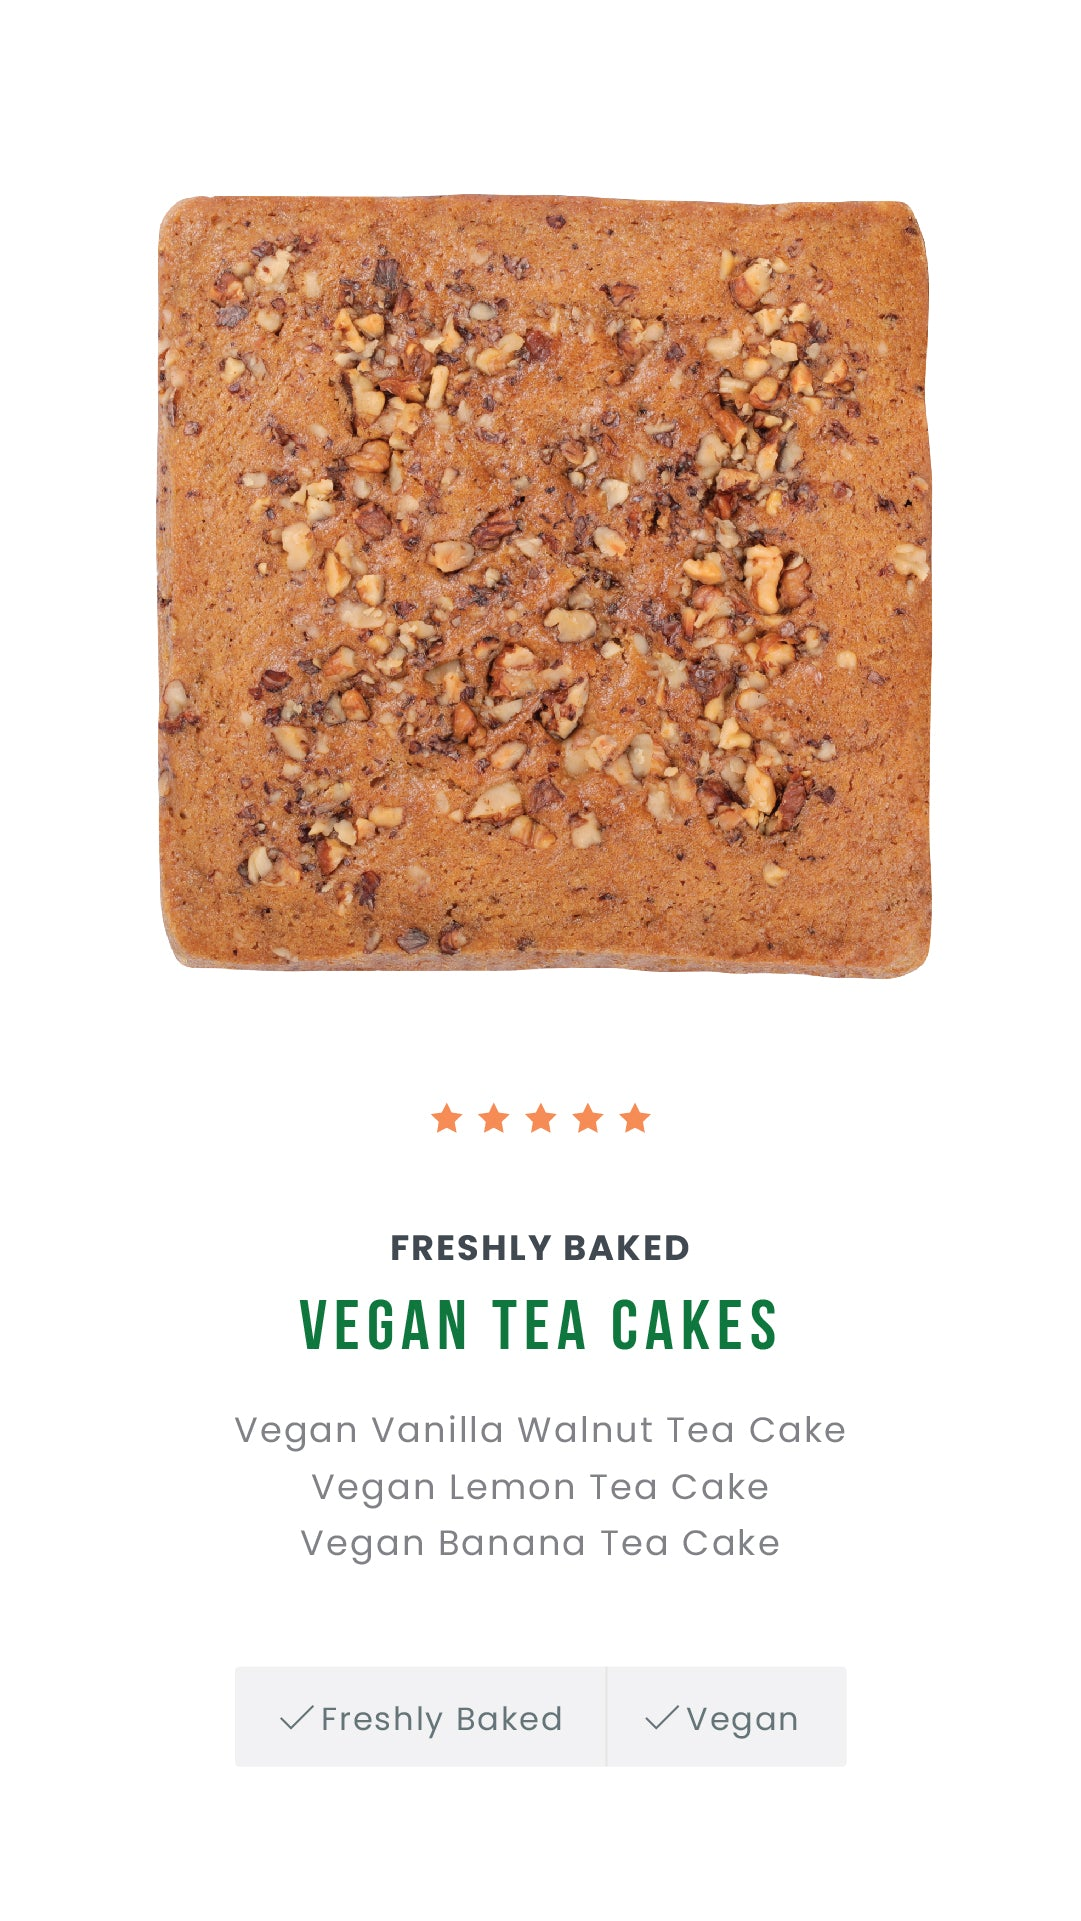 A light and delicious accompaniment to your tea or coffee and perfect for those dessert cravings.   Delivered to you freshly baked from our oven to your table.